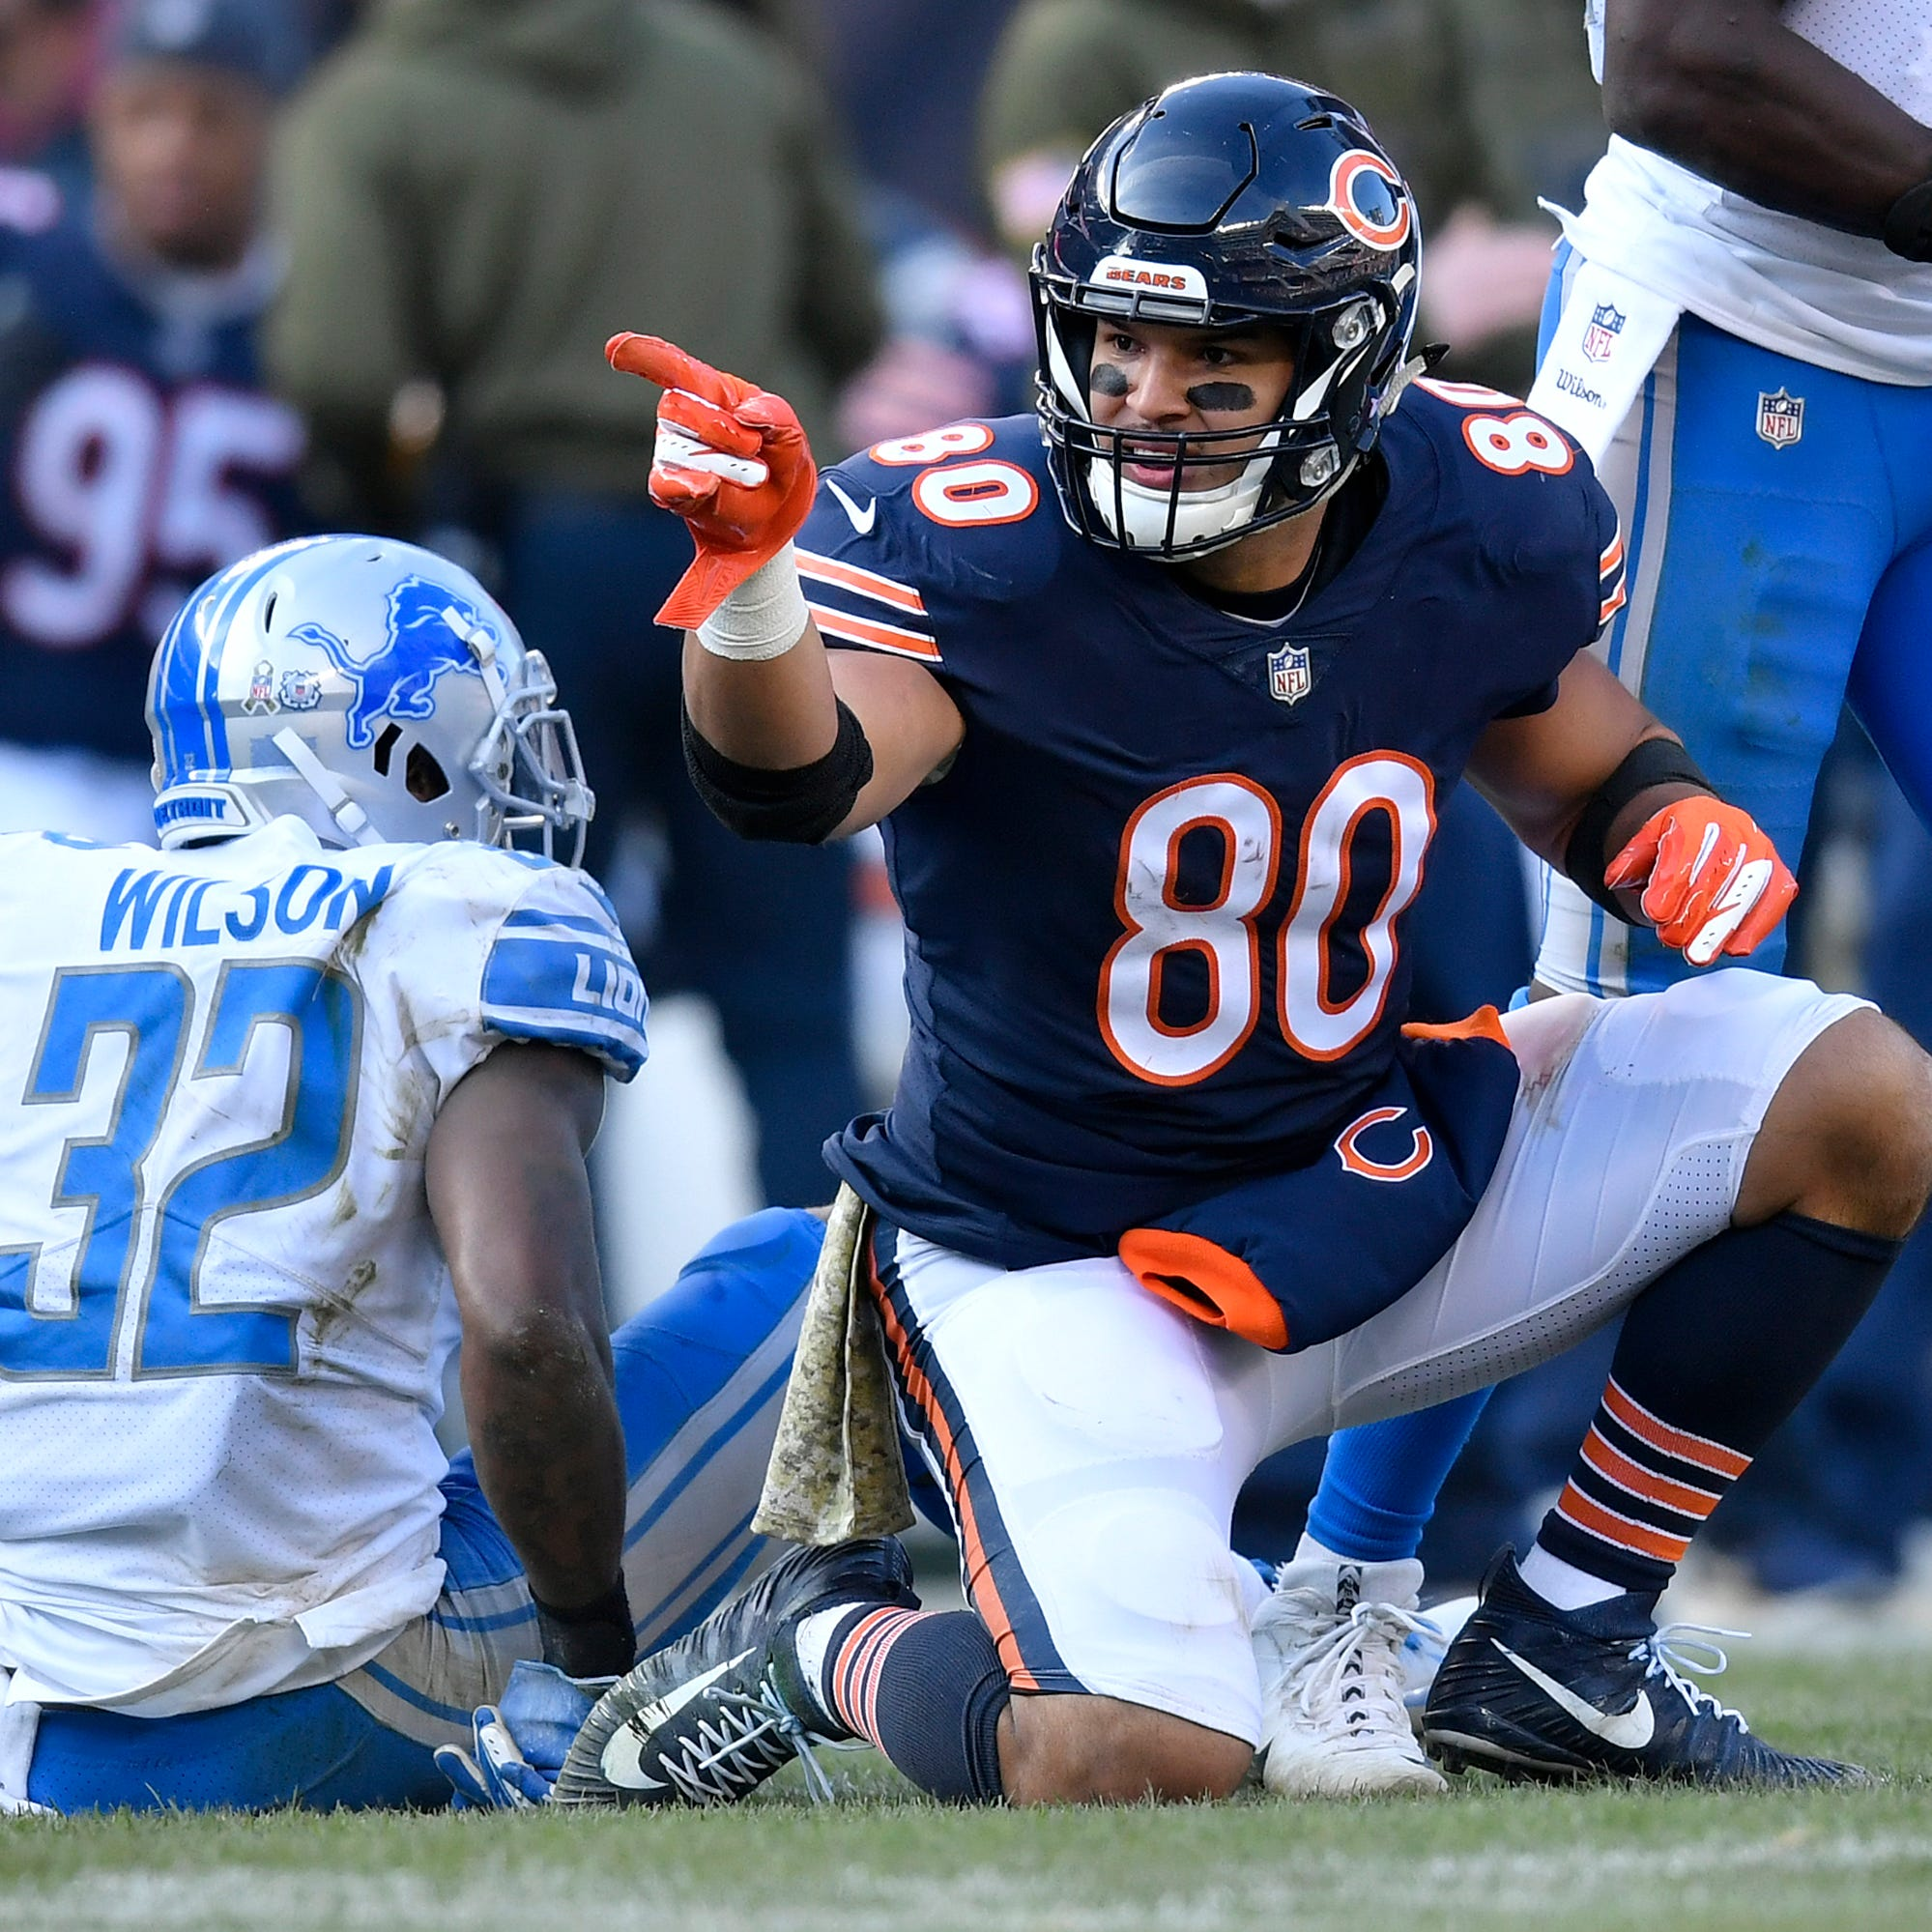 Detroit Lions vs. Bears predictions: Likely not a happy Thanksgiving